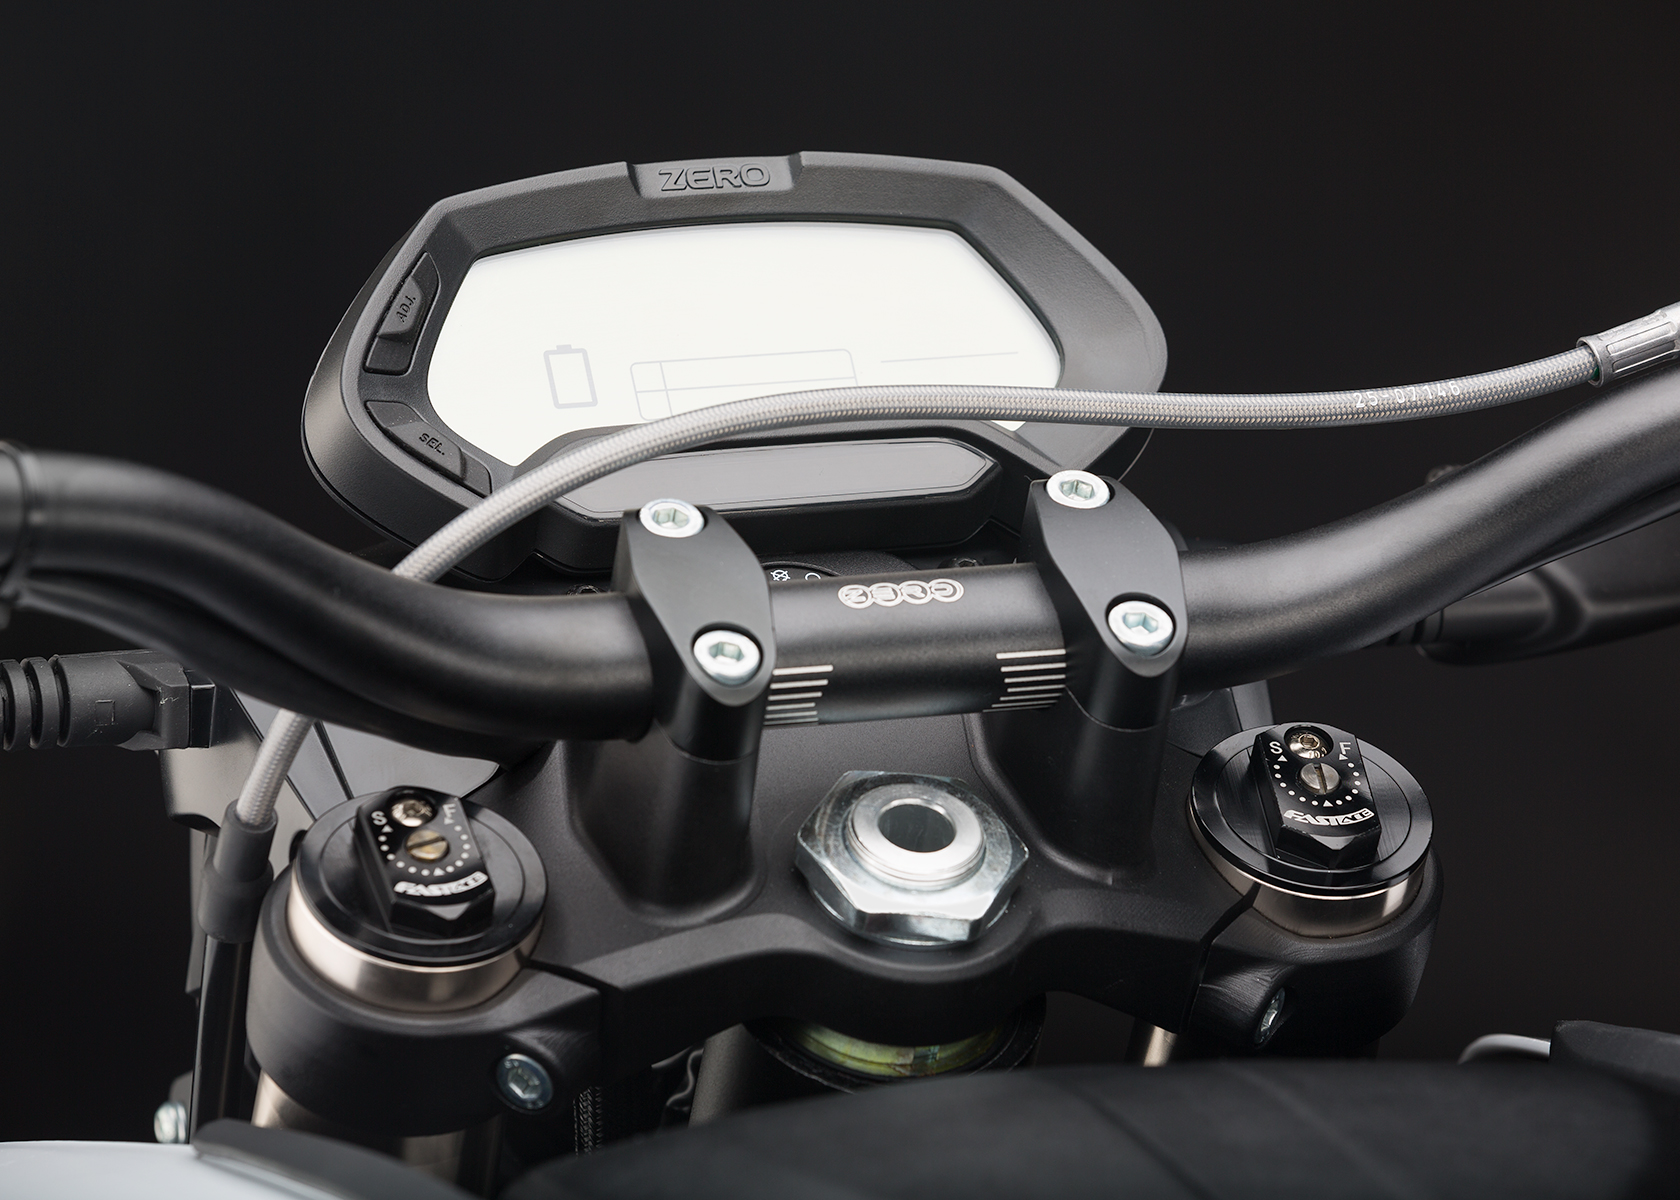 2014 Zero DS Electric Motorcycle: Dash